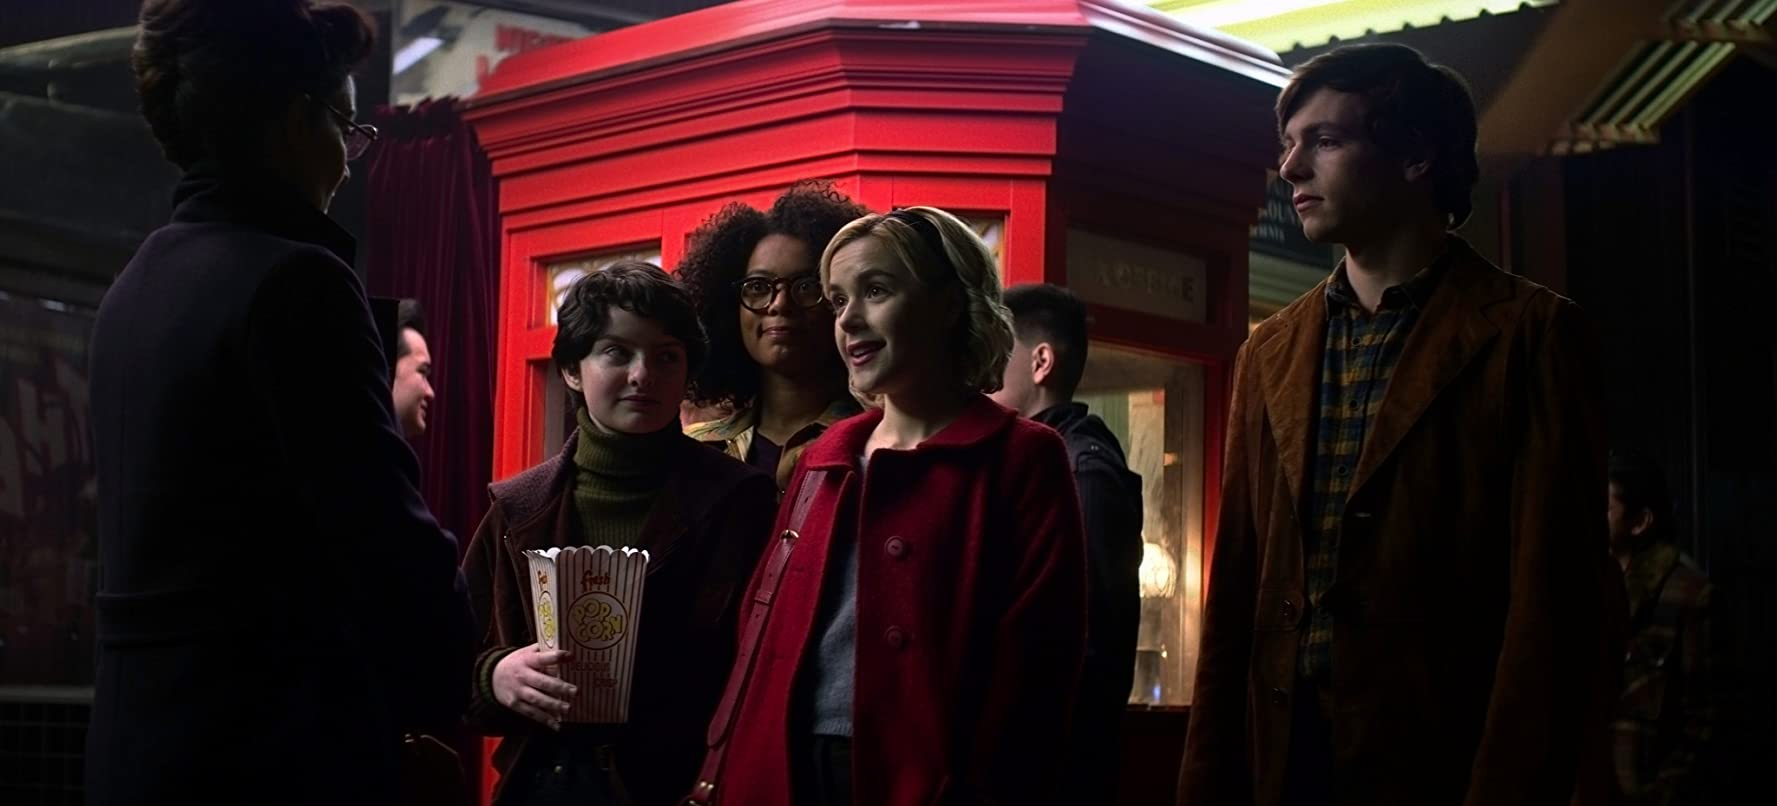 Michelle Gomez, Kiernan Shipka, Ross Lynch, Jaz Sinclair, and Lachlan Watson in Chilling Adventures of Sabrina (2018)